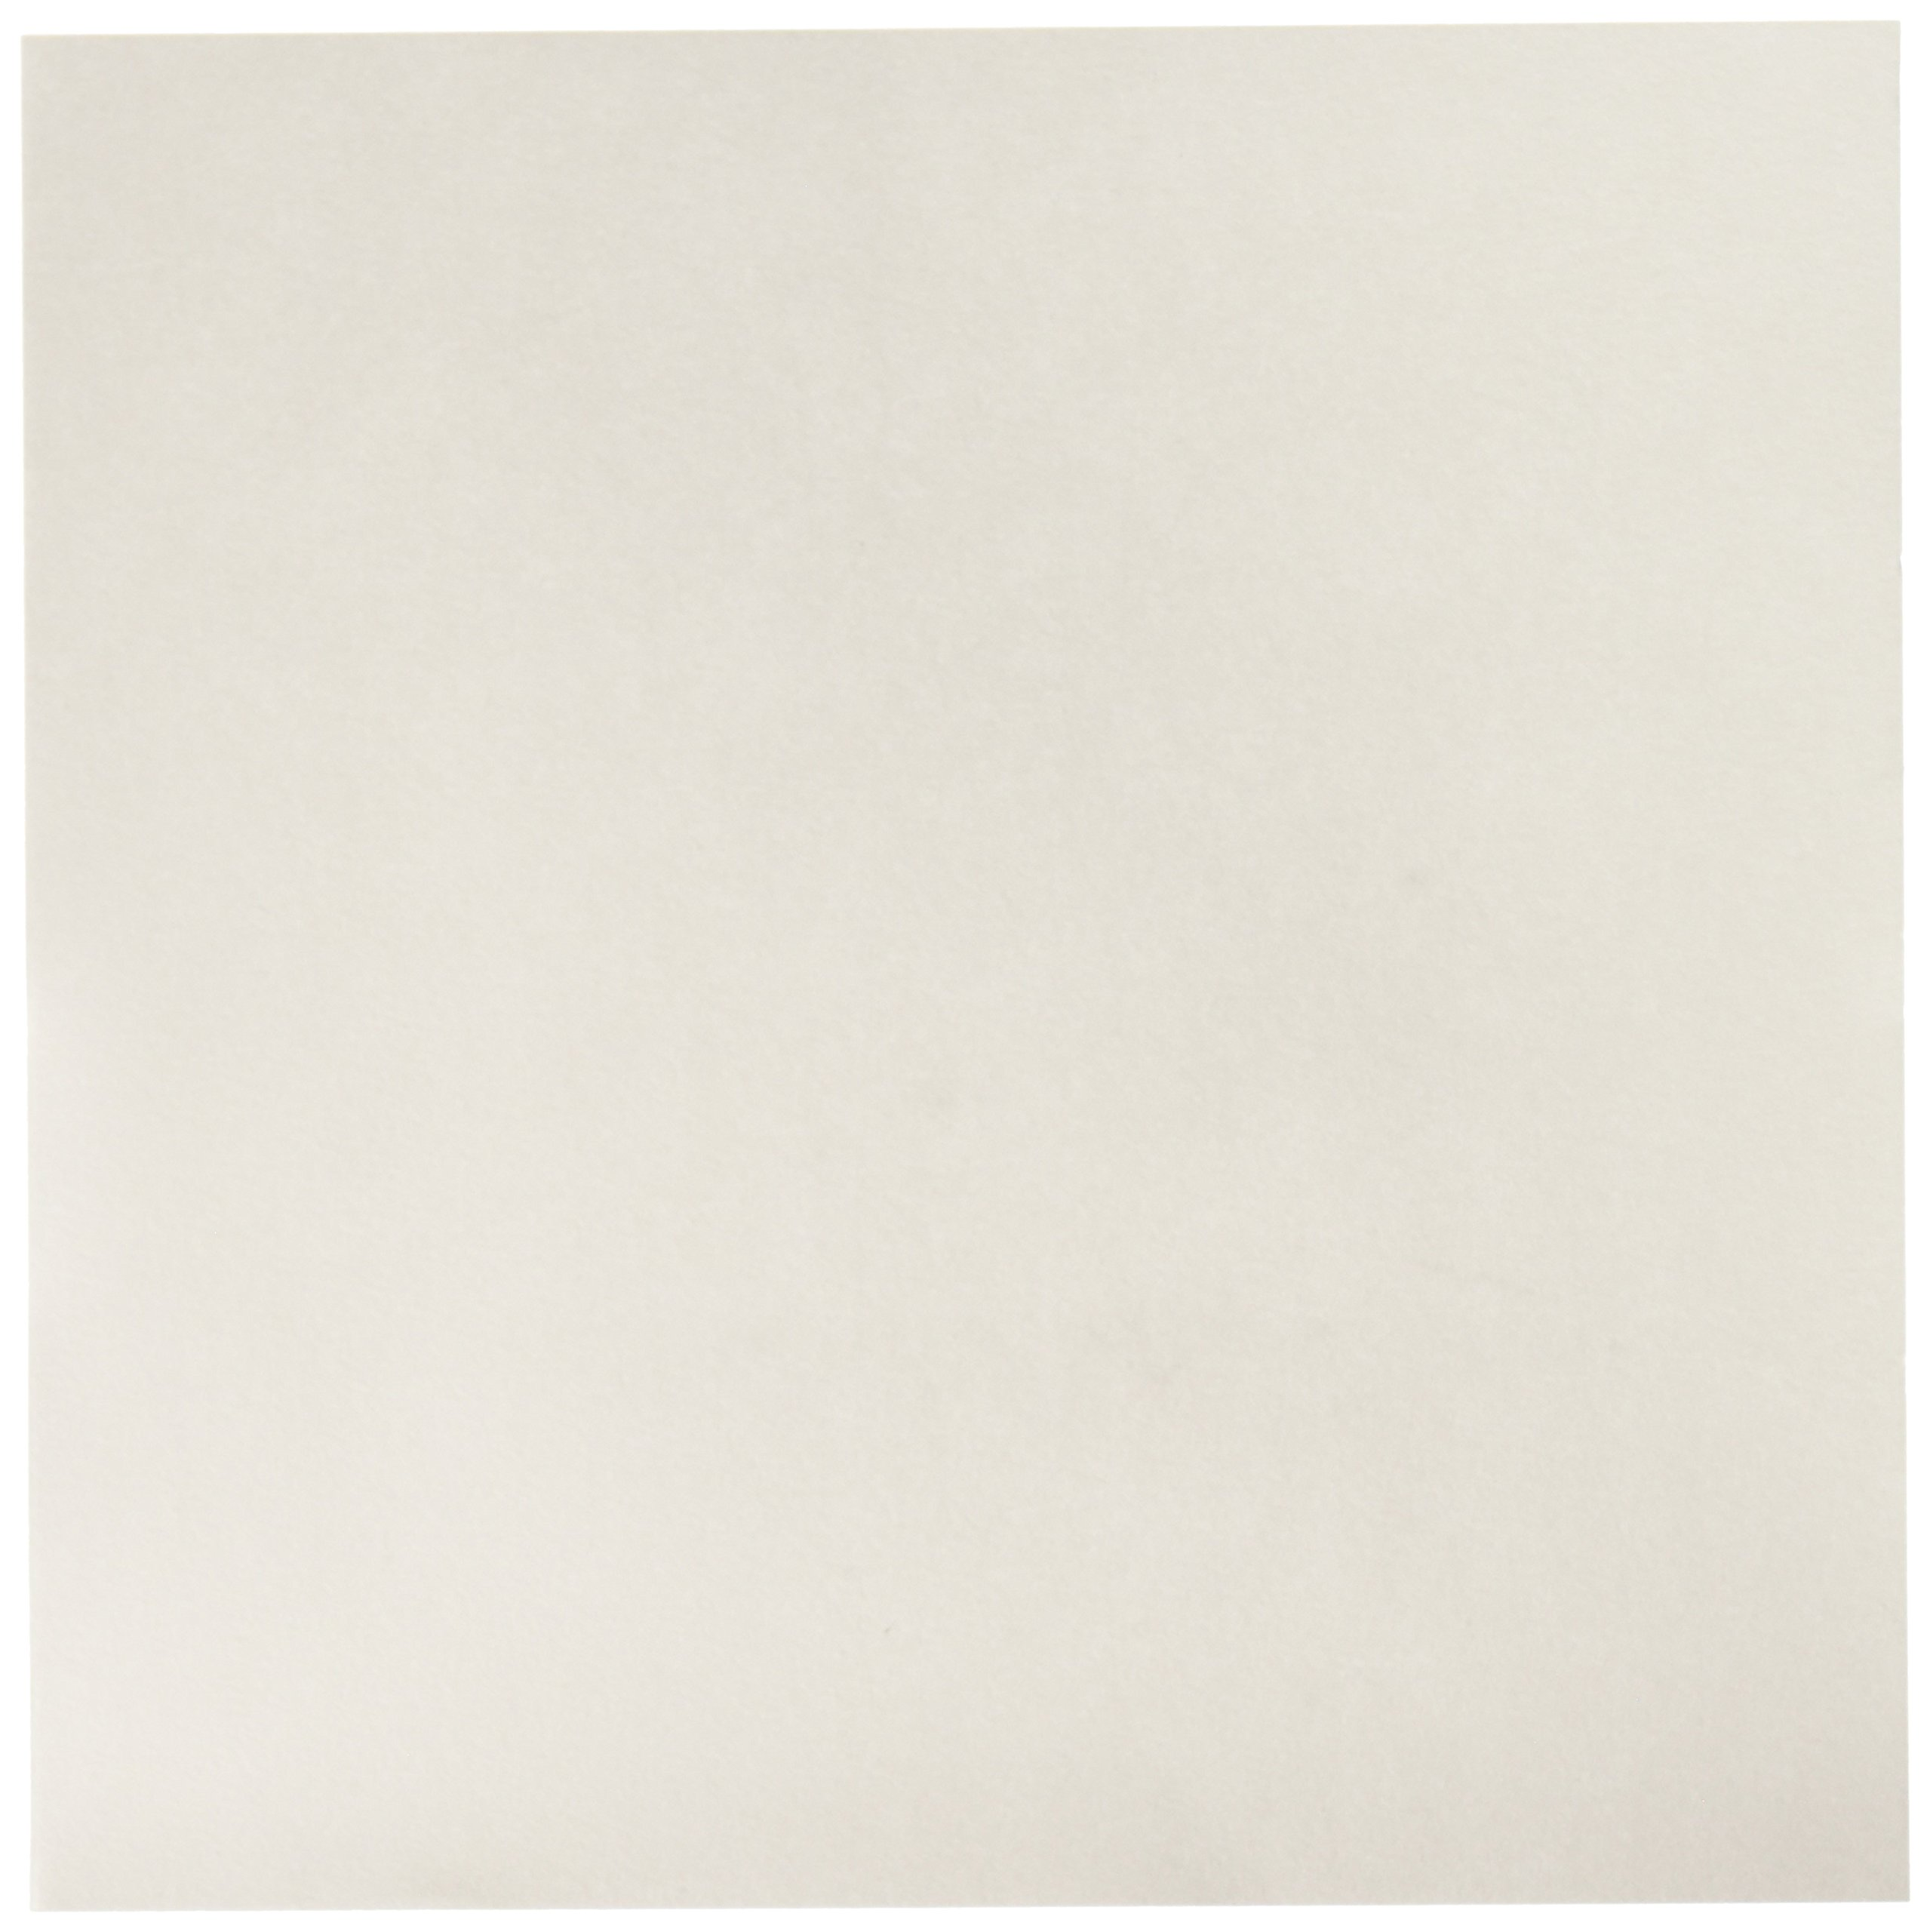 GE Whatman 3001-861 Cellulose Chromatography Paper Sheet, 20cm Length x 20cm Width, 14psi Dry Burst, 130mm/30min Flow Rate, Grade 1 (Pack of 100) by Whatman